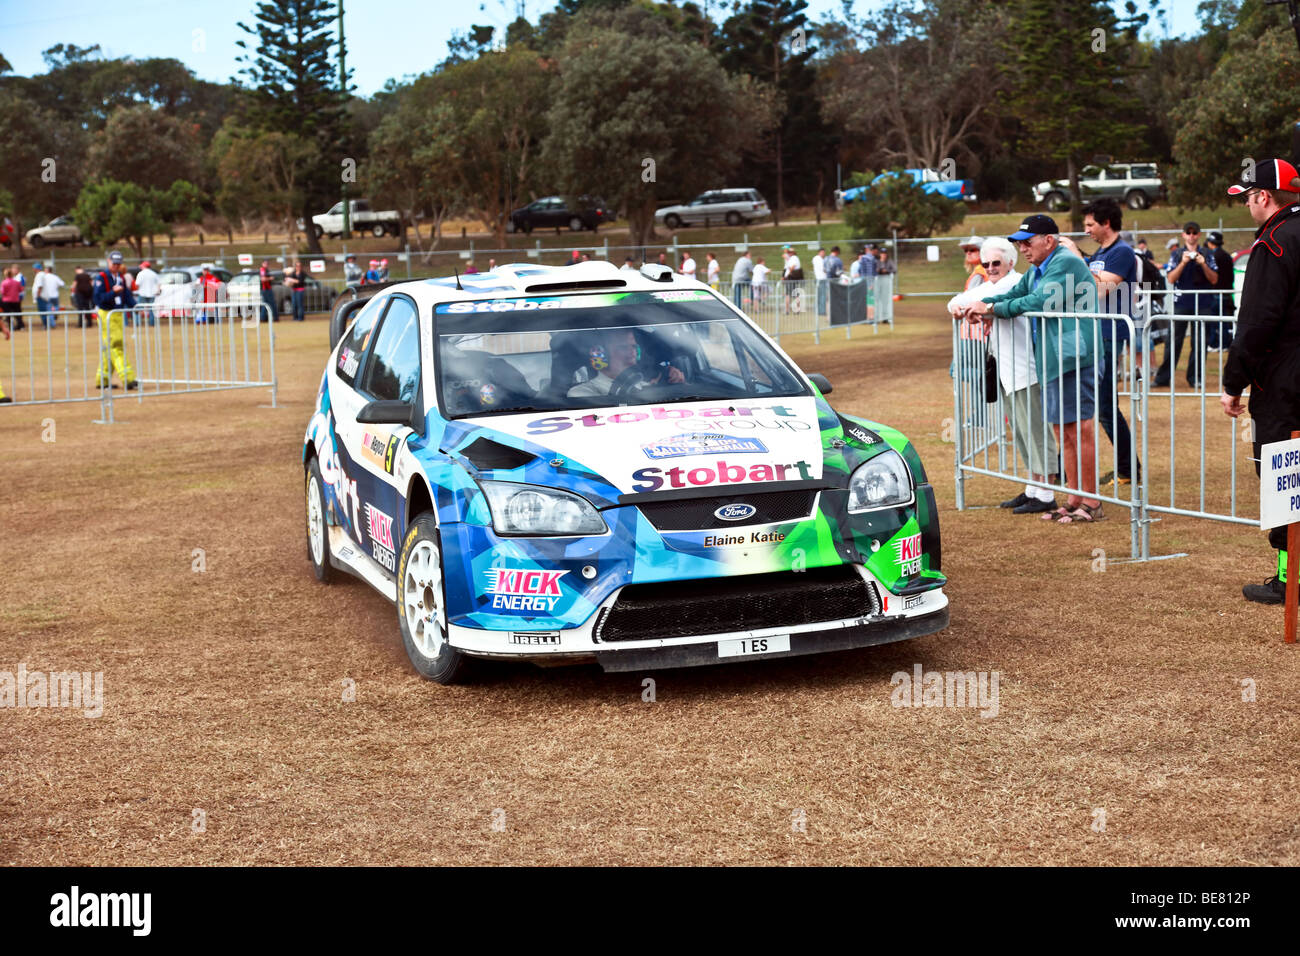 Motorsport/Rally Australia 2009/WRC rally car moving into its pit stop - Stock Image